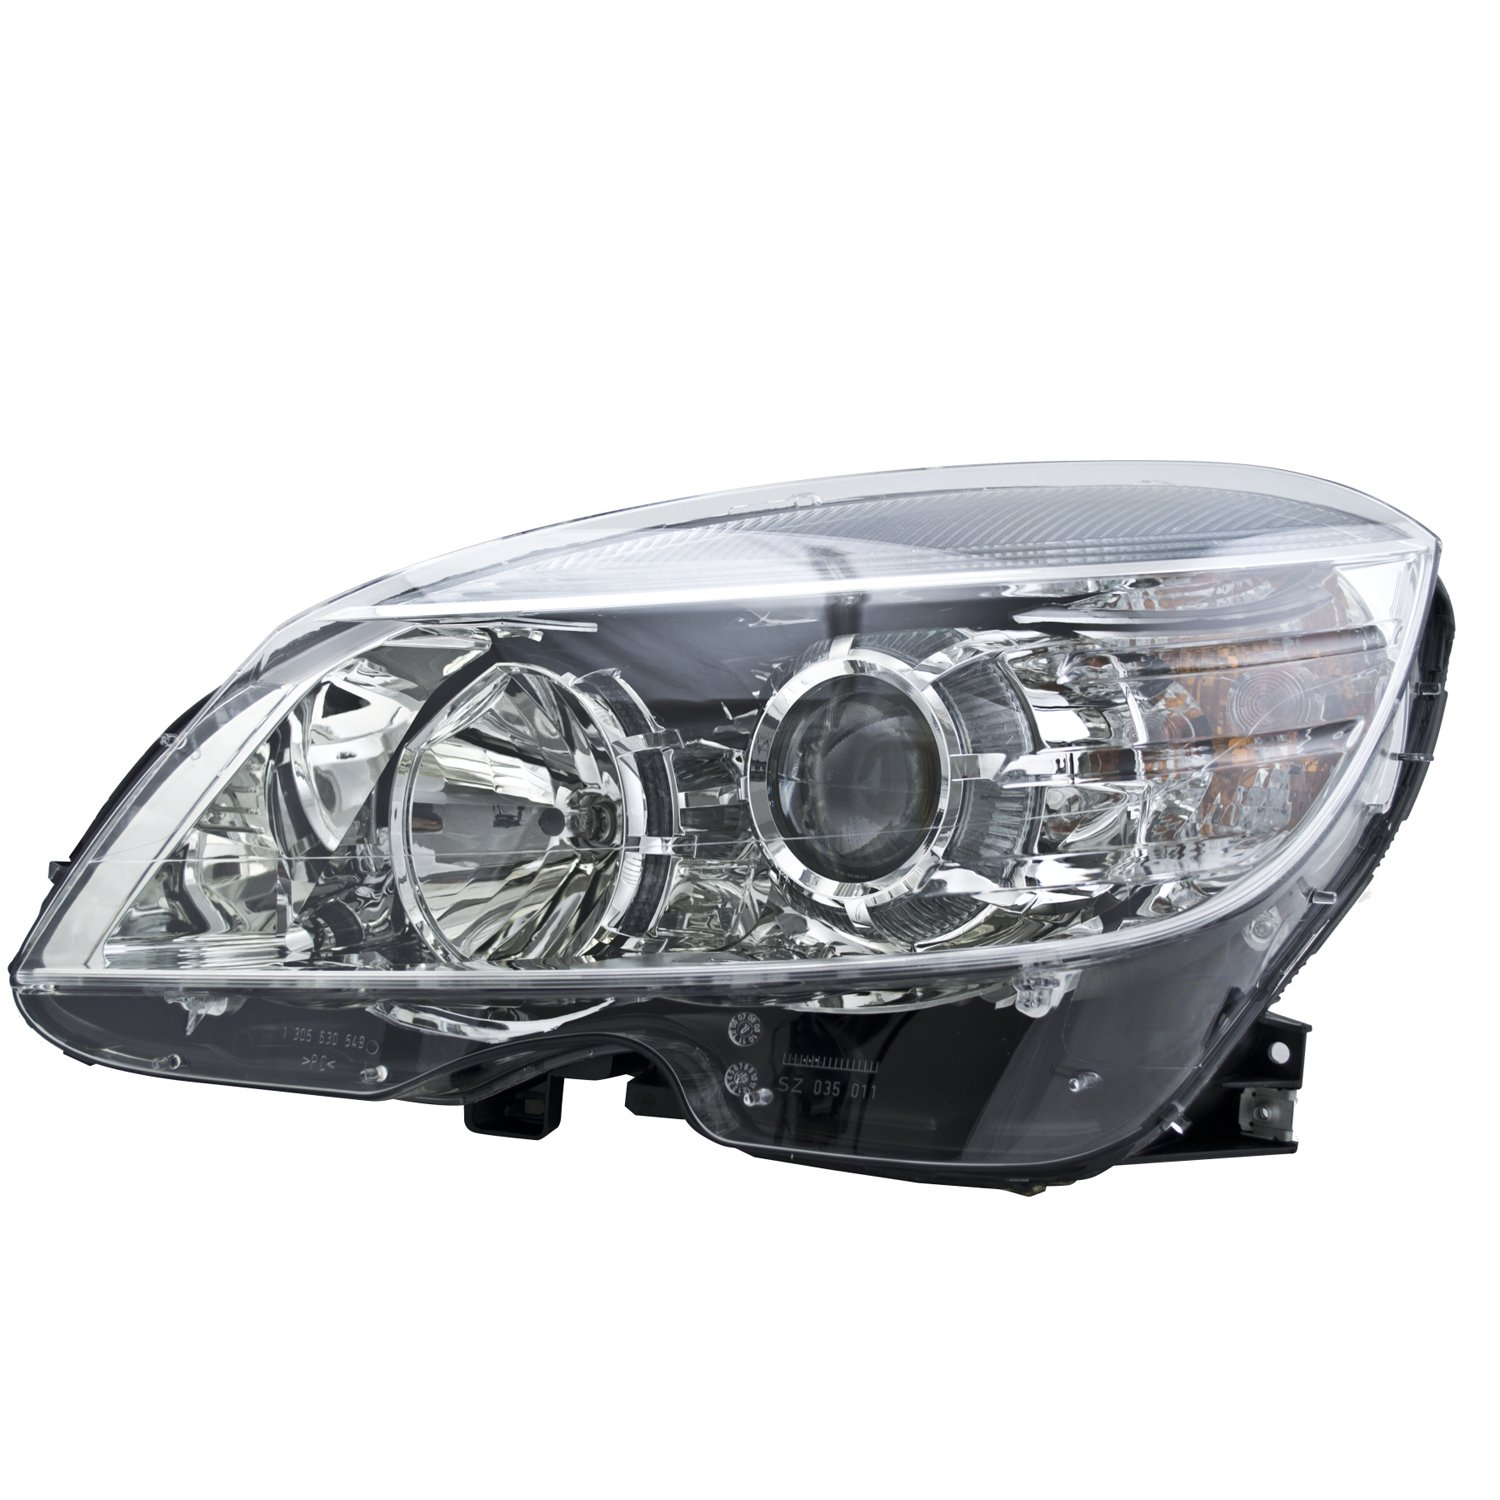 PartsChannel KEYMB2502162 OE Replacement Headlight Assembly MERCEDES C300